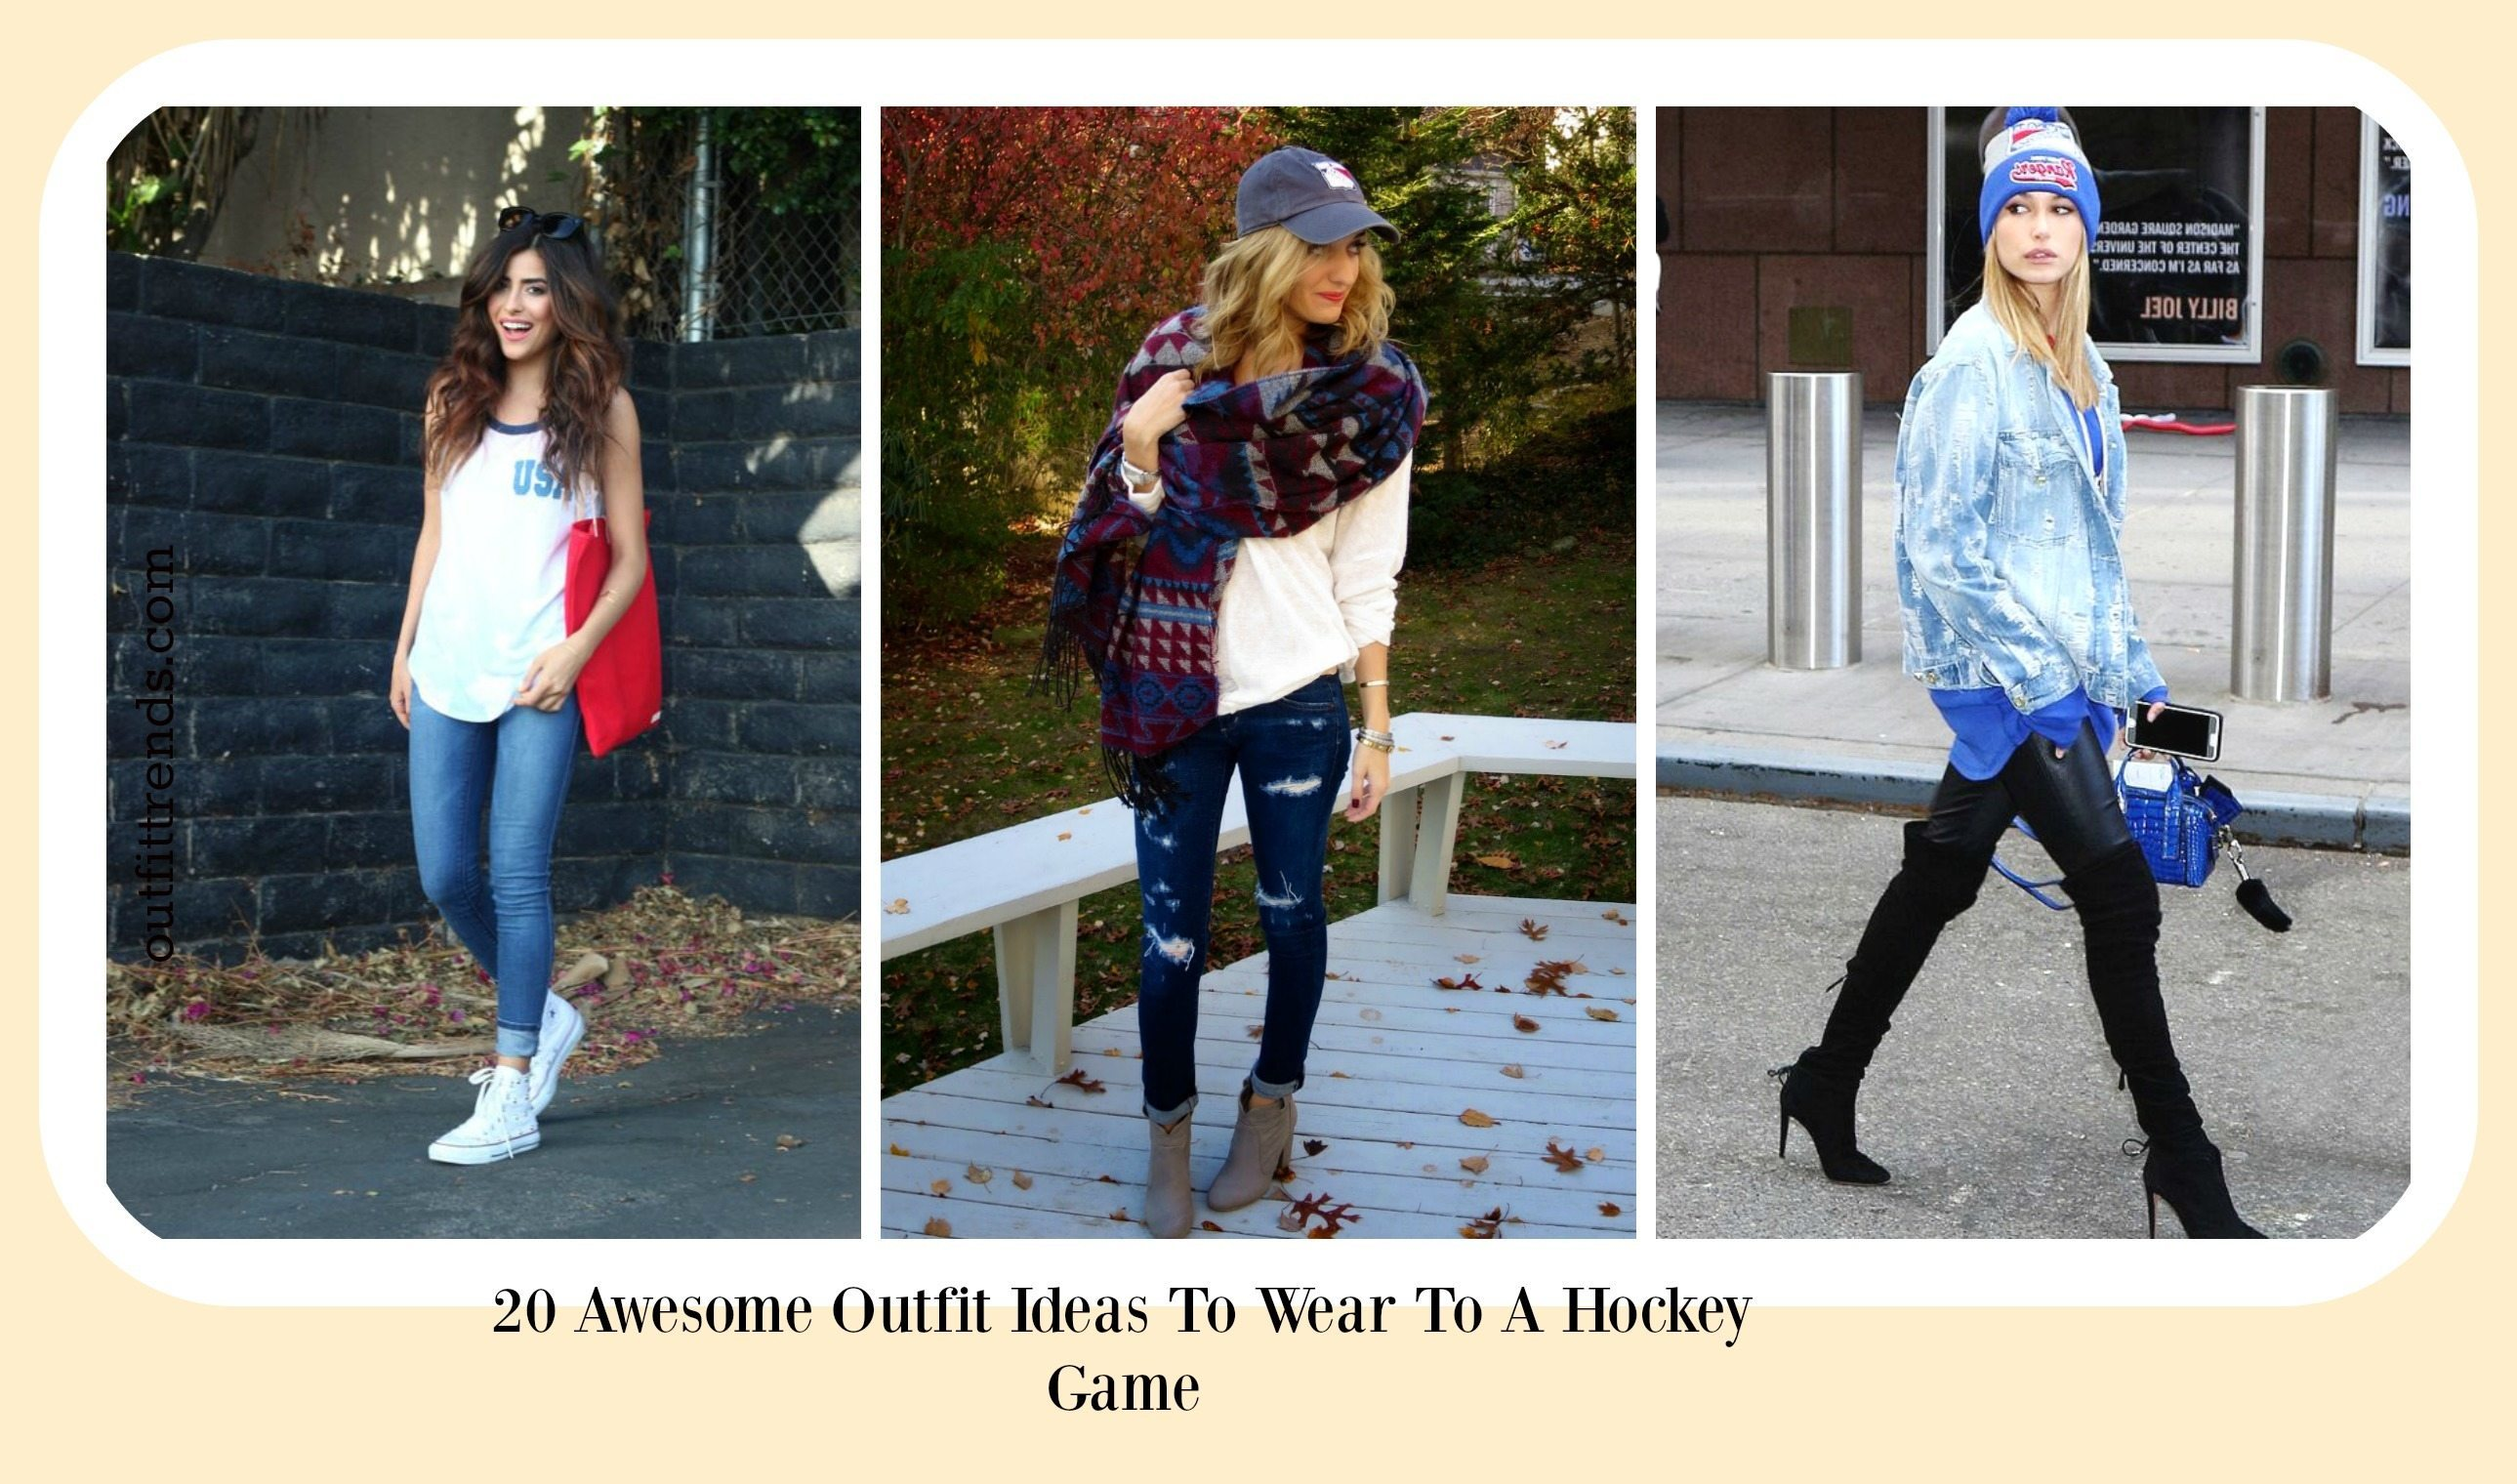 Hockey Game Outfits- 17 Ideas What To Wear To A Hockey Game